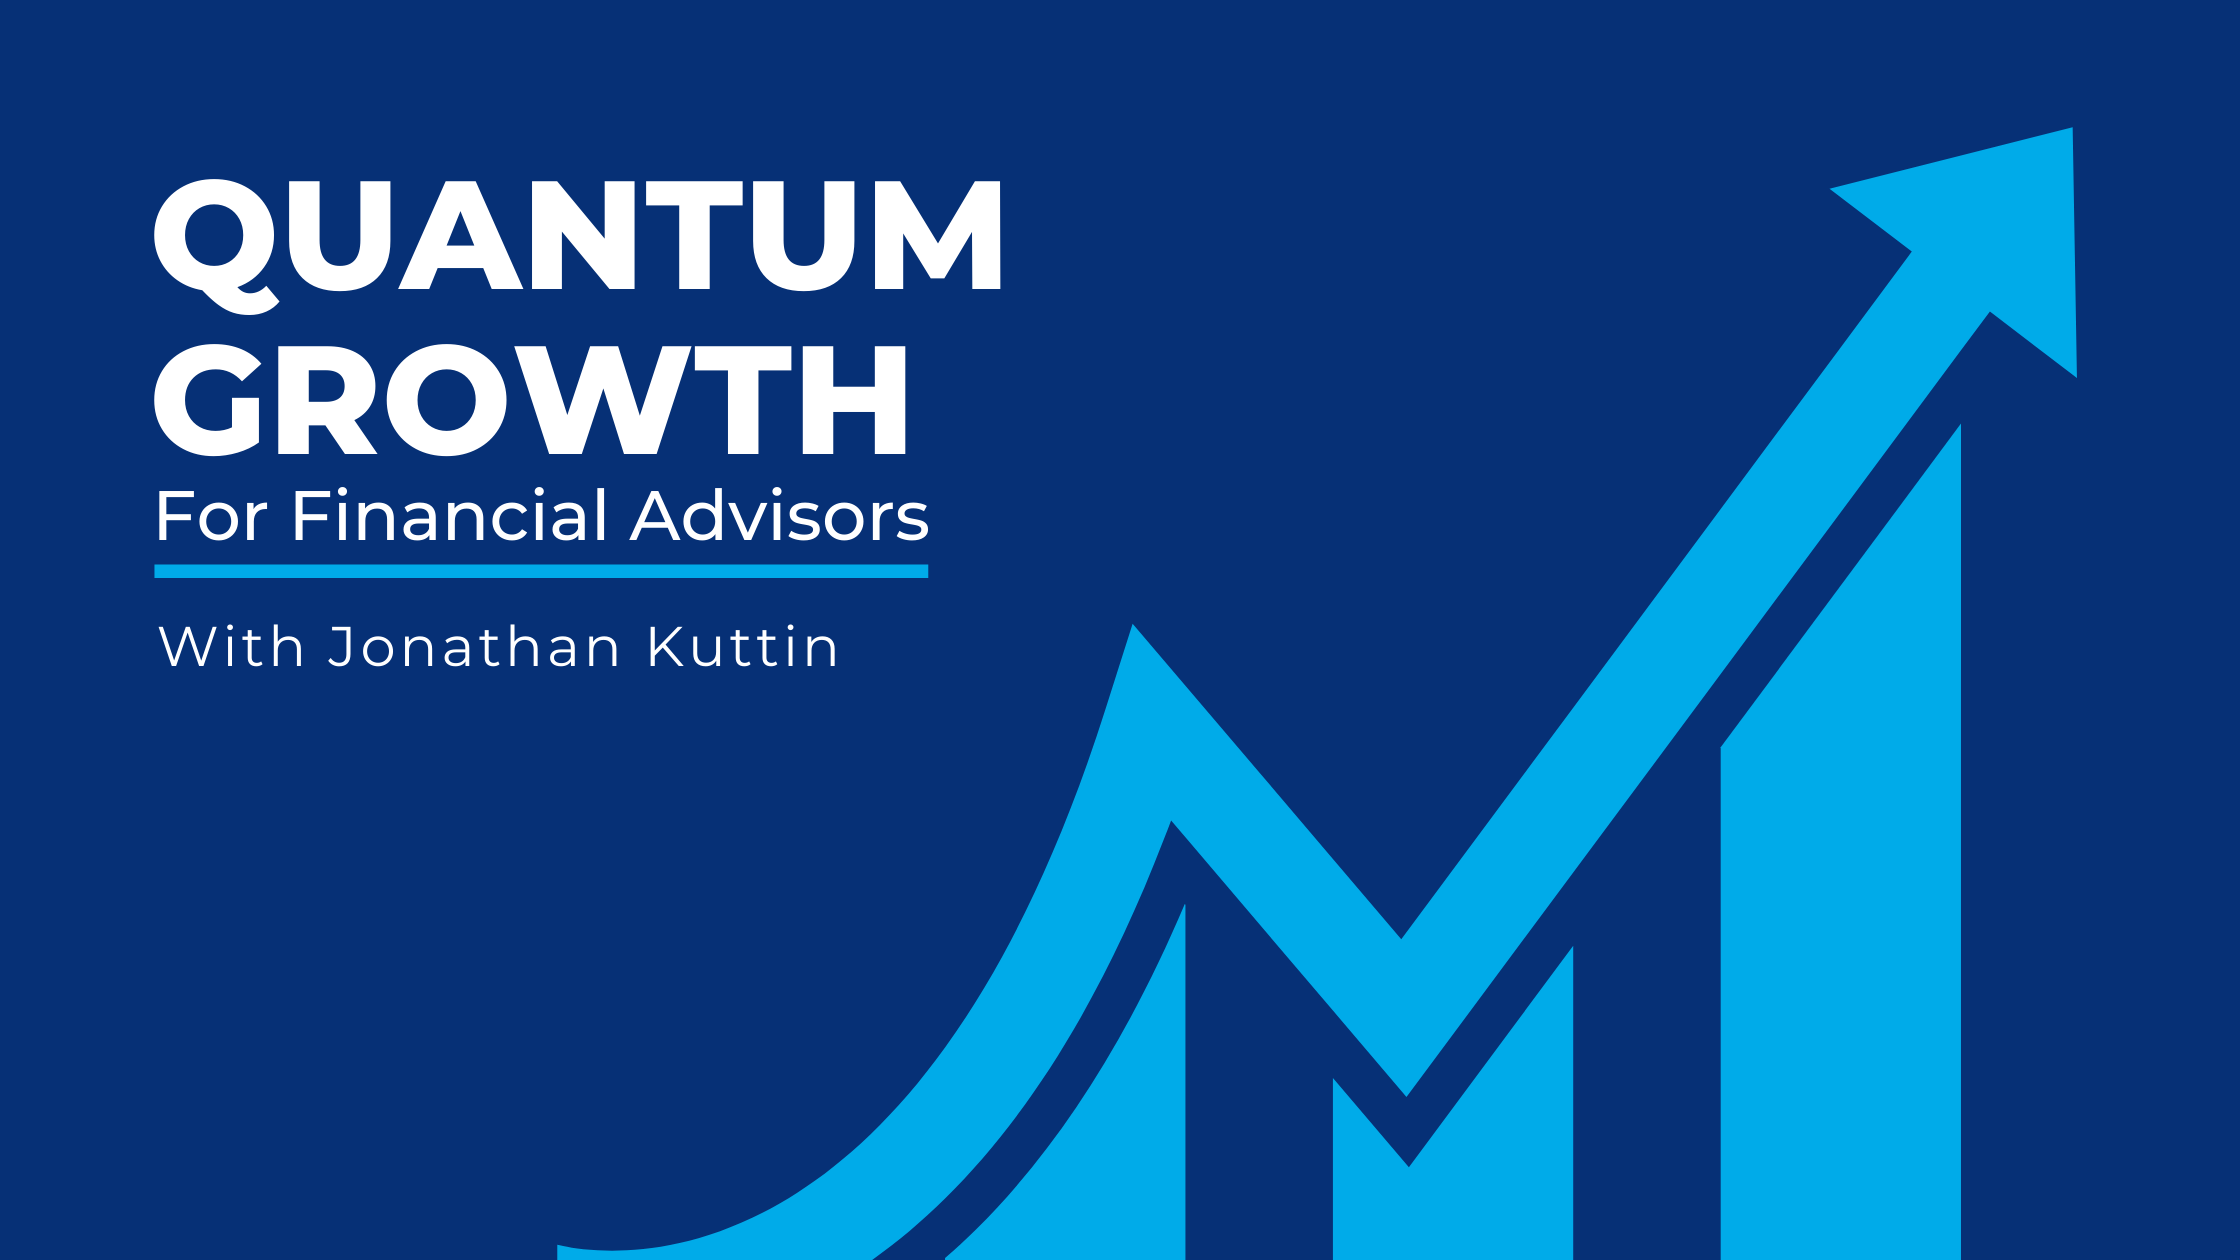 Quantum Growth for Financial Advisors Podcast Cover